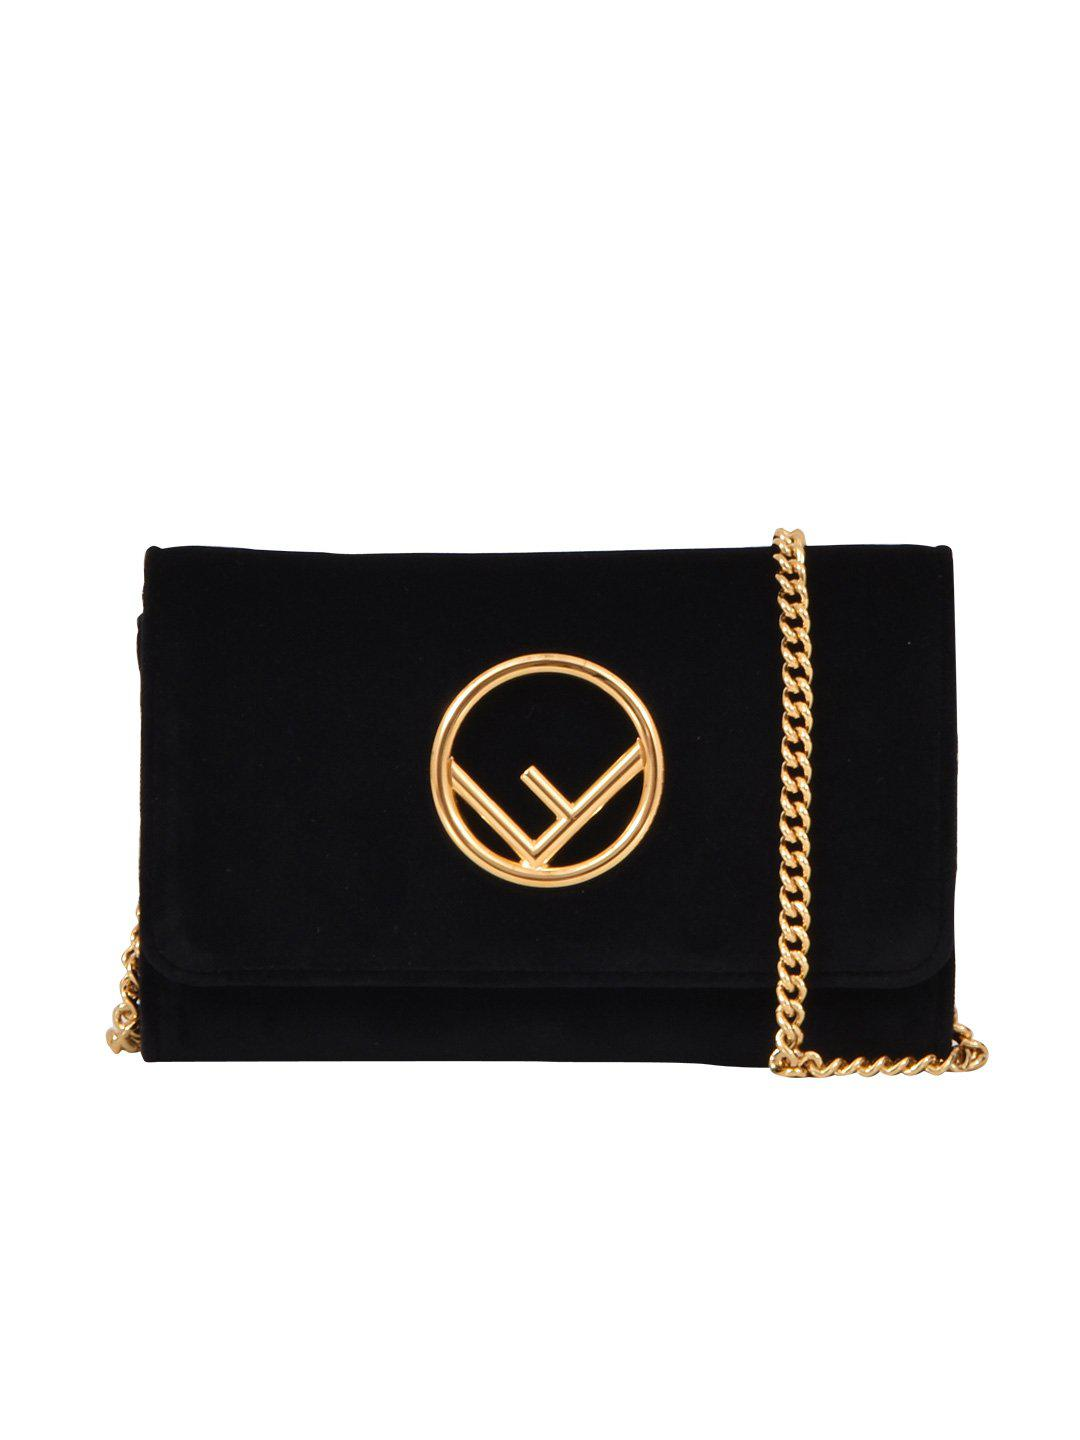 fa7d2bcaea Fendi Clutch Chain Bag in Black - Lyst